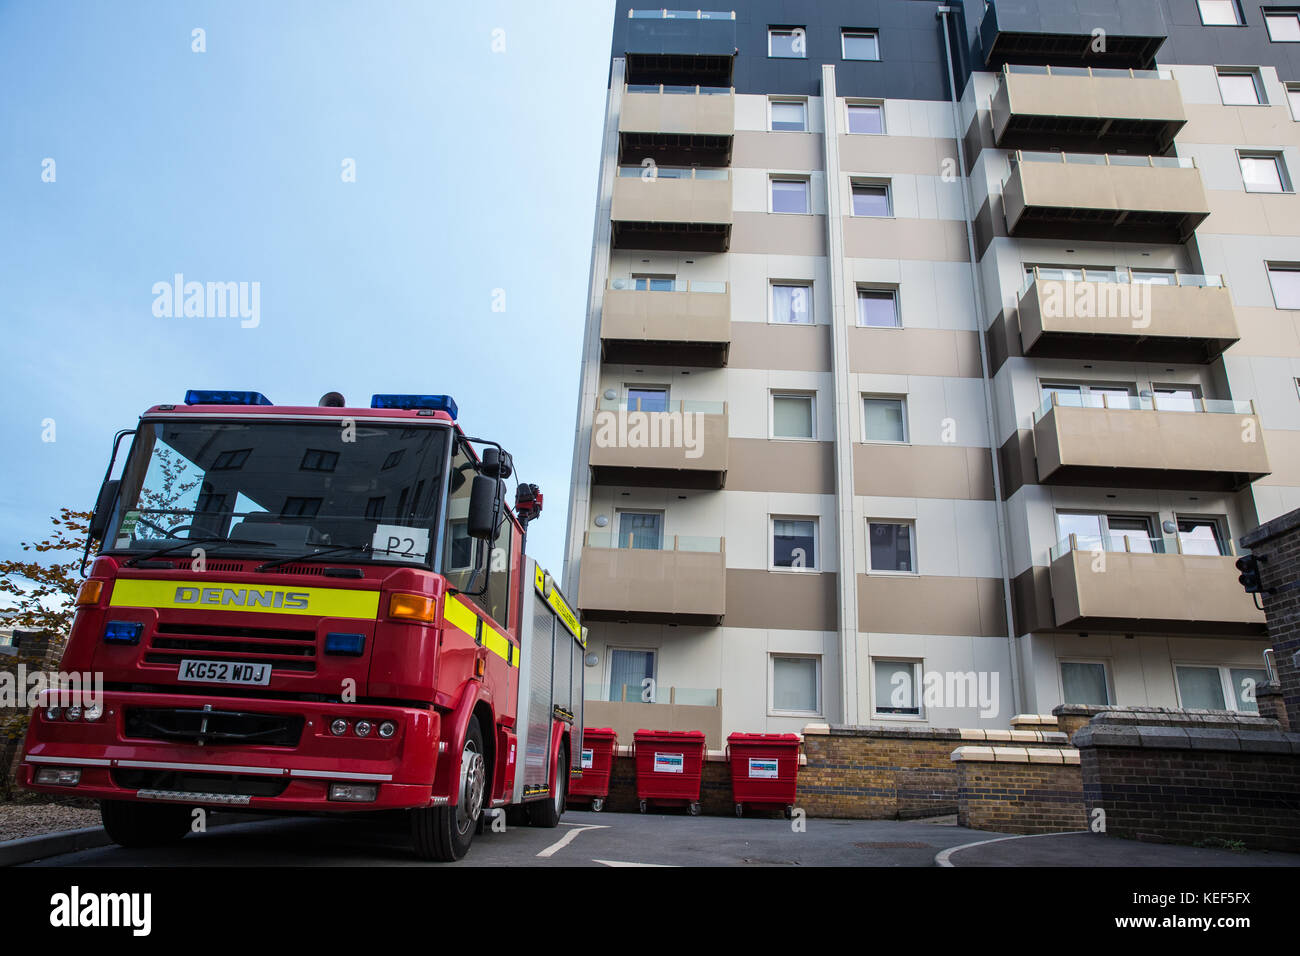 Slough, UK. 20th Oct, 2017. A fire engine and crew are keeping a 24-hour watch on privately-owned Nova House at - Stock Image